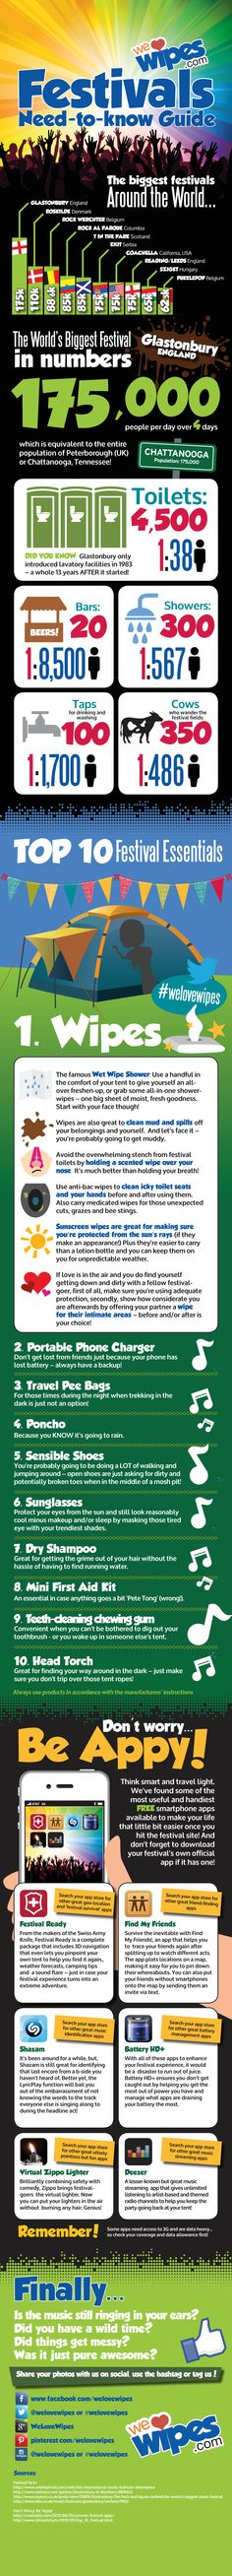 Festival season is upon us again!! We Love Wipes have come up with the ultimate We Love Wipes Need-To-Know Guide for Festivals! From toilet to person ratios, to the must have festival apps and even a quick and easy hygiene guide to stay fresh while you are living awesome memories that will last a lifetime. (Assuming you can remember them)